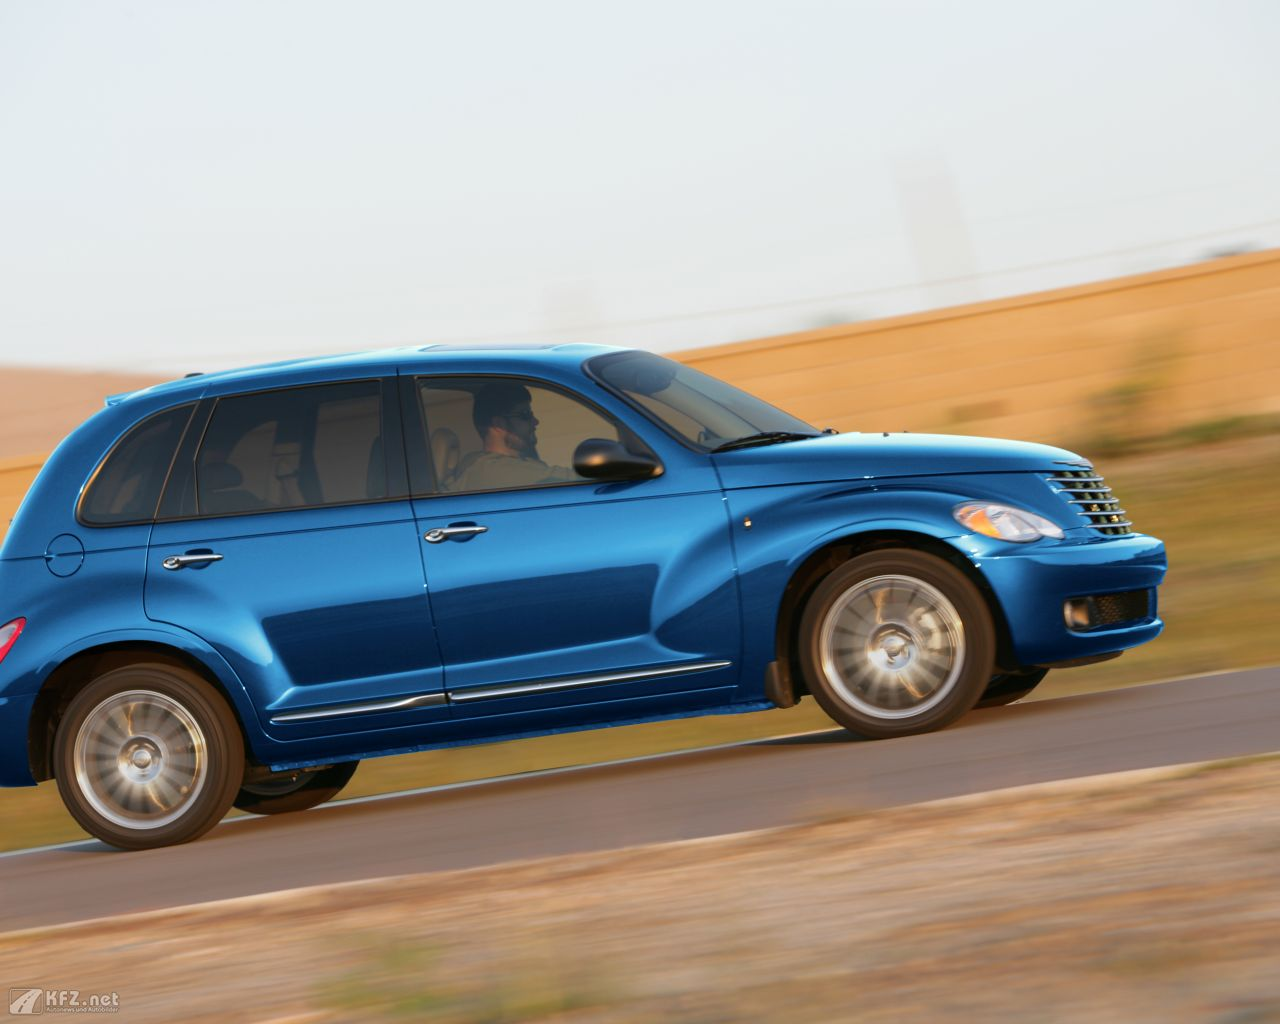 chrysler-pt-cruiser-1280x1024-16